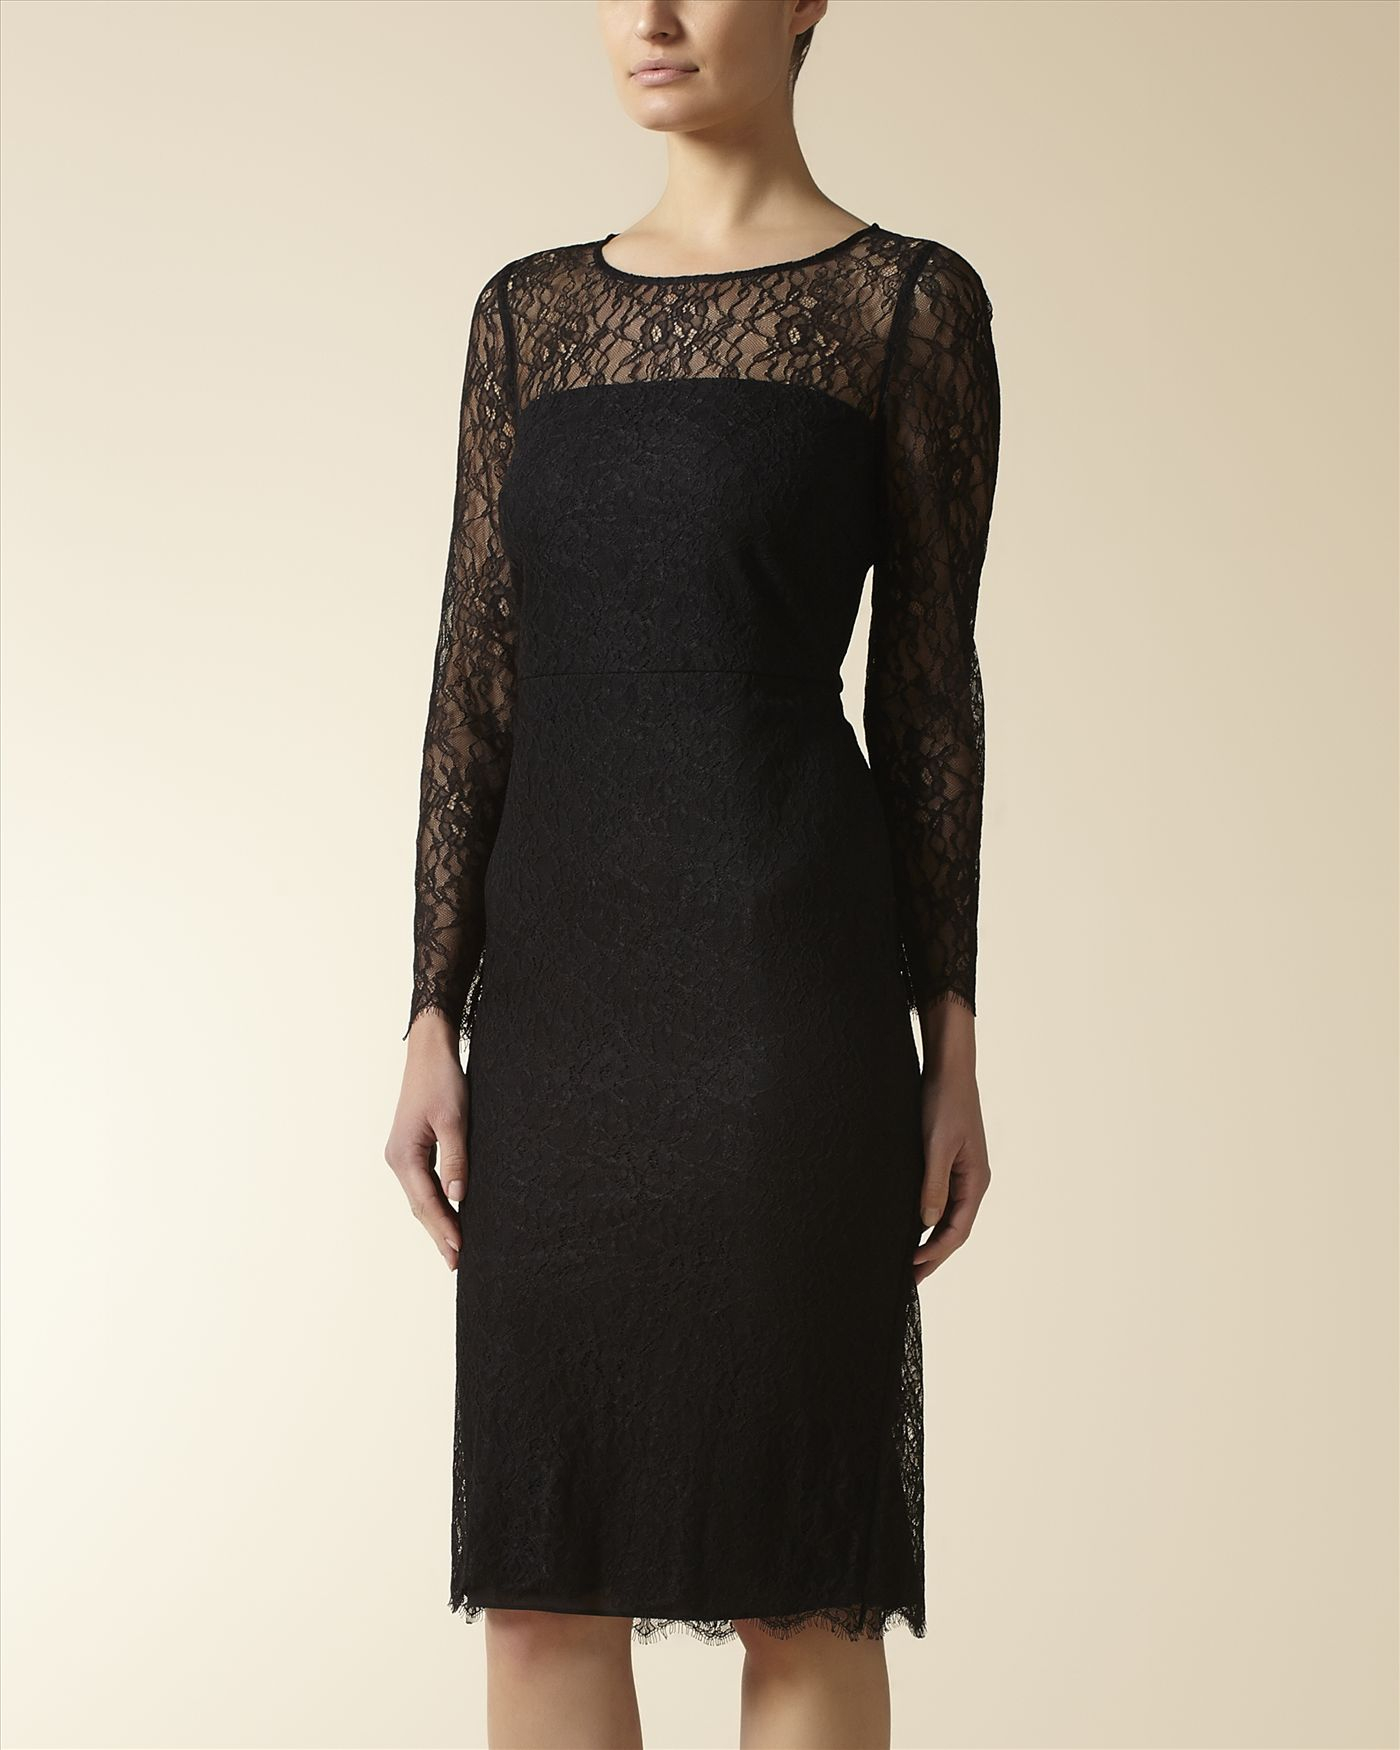 Black all over lace dress